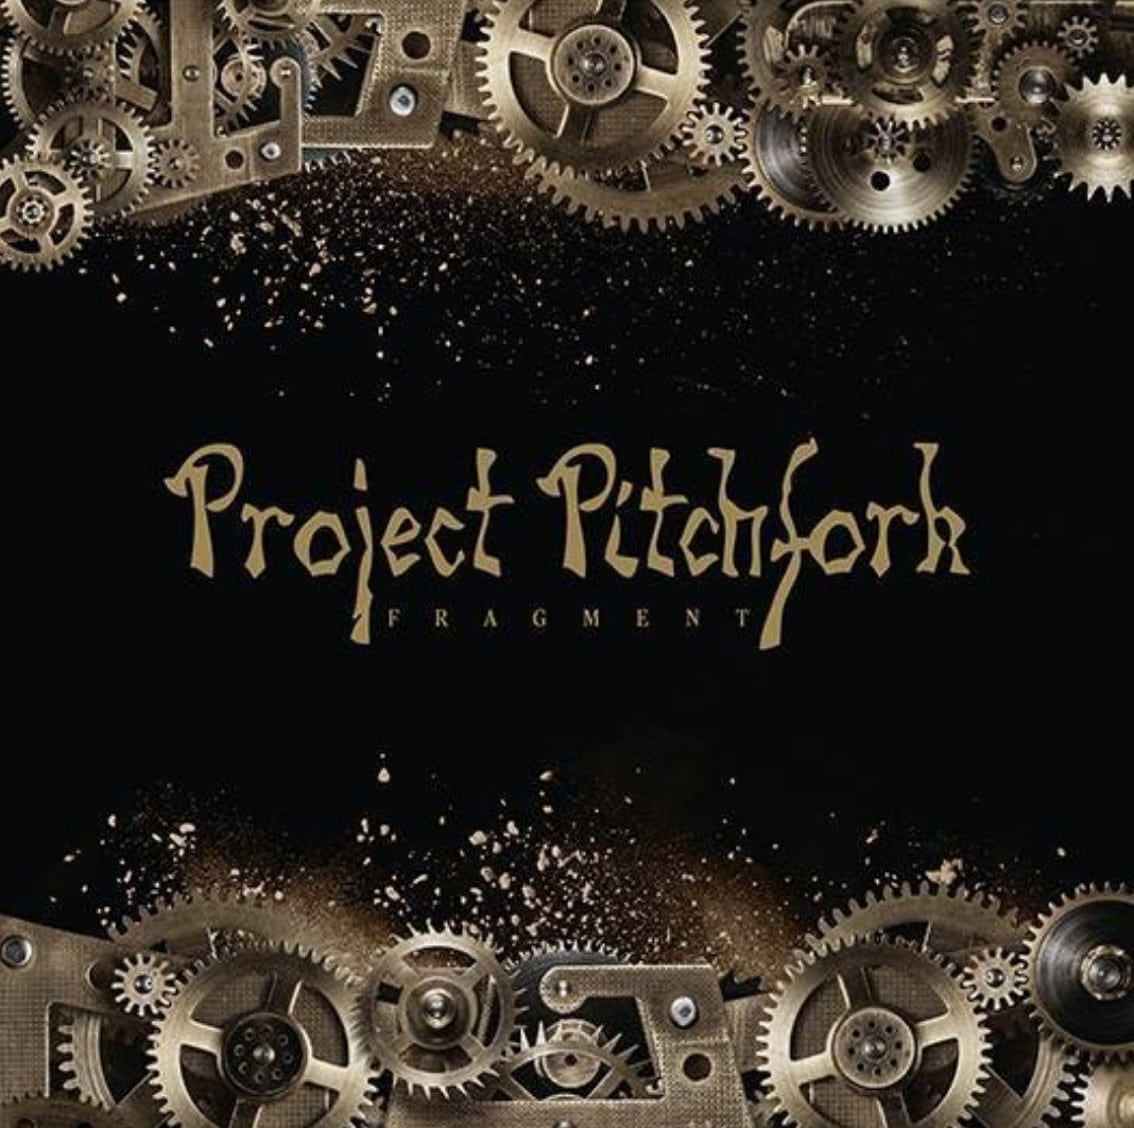 Project Pitchfork to launch'Fragment' in October as a limited 2CD edition as well